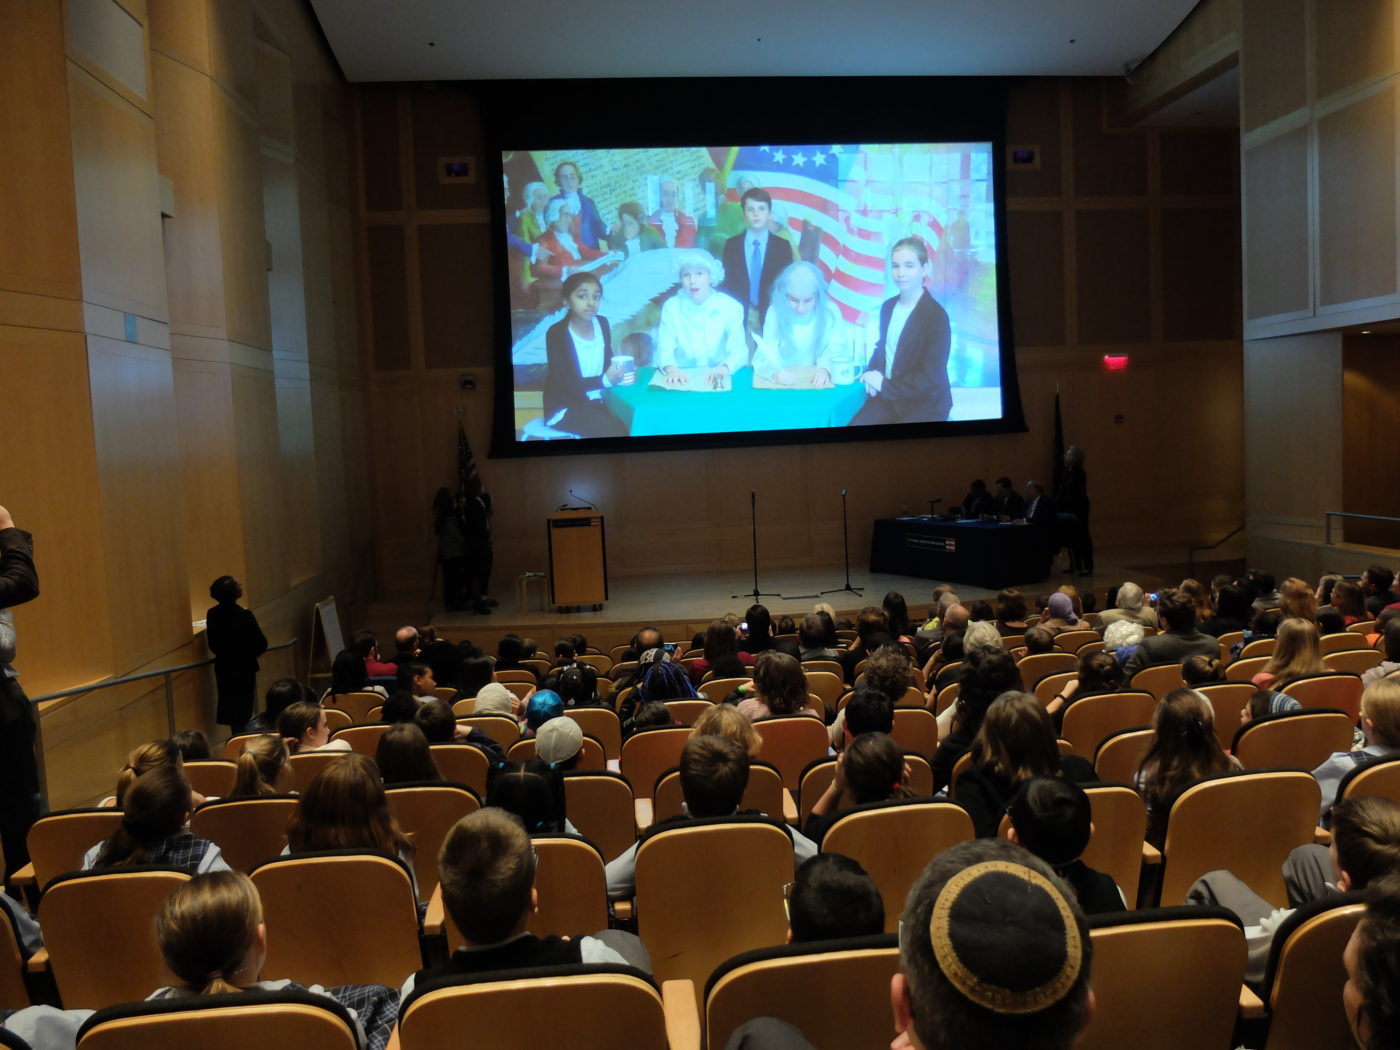 Audience watches a video made by one of the classes.